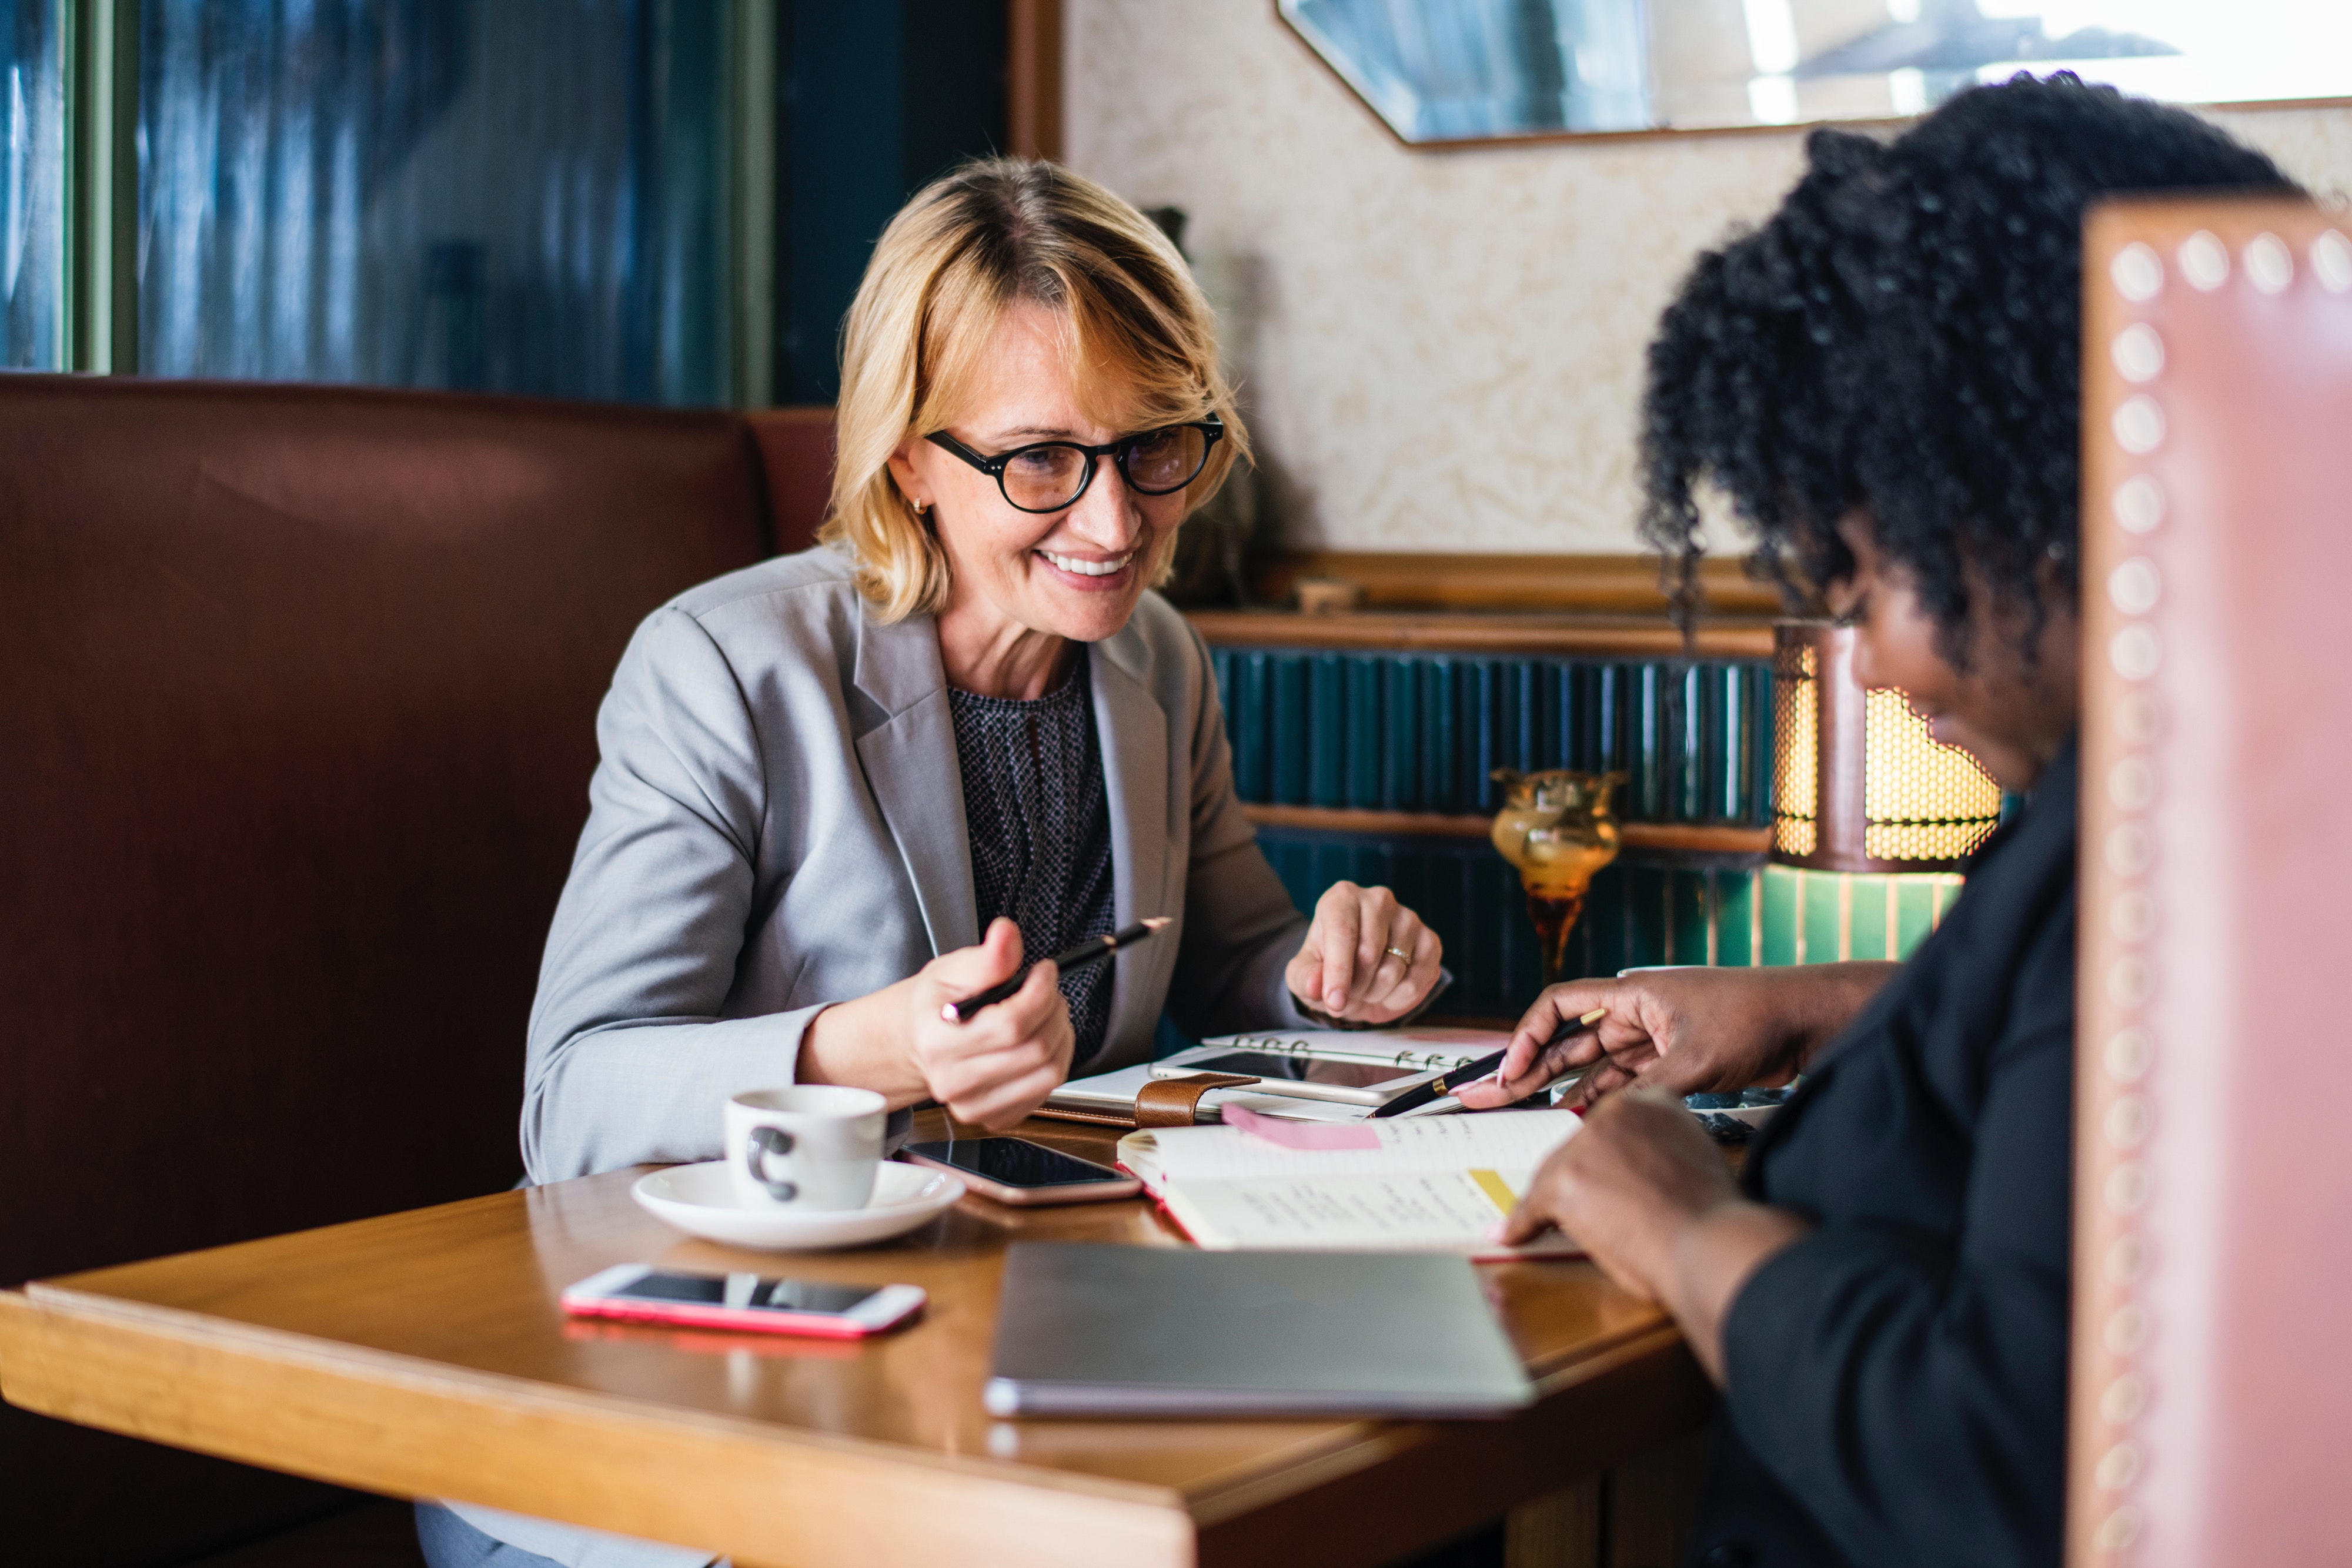 Request a Consultation - Smiling Women Discussion | Legal Consulting Firm